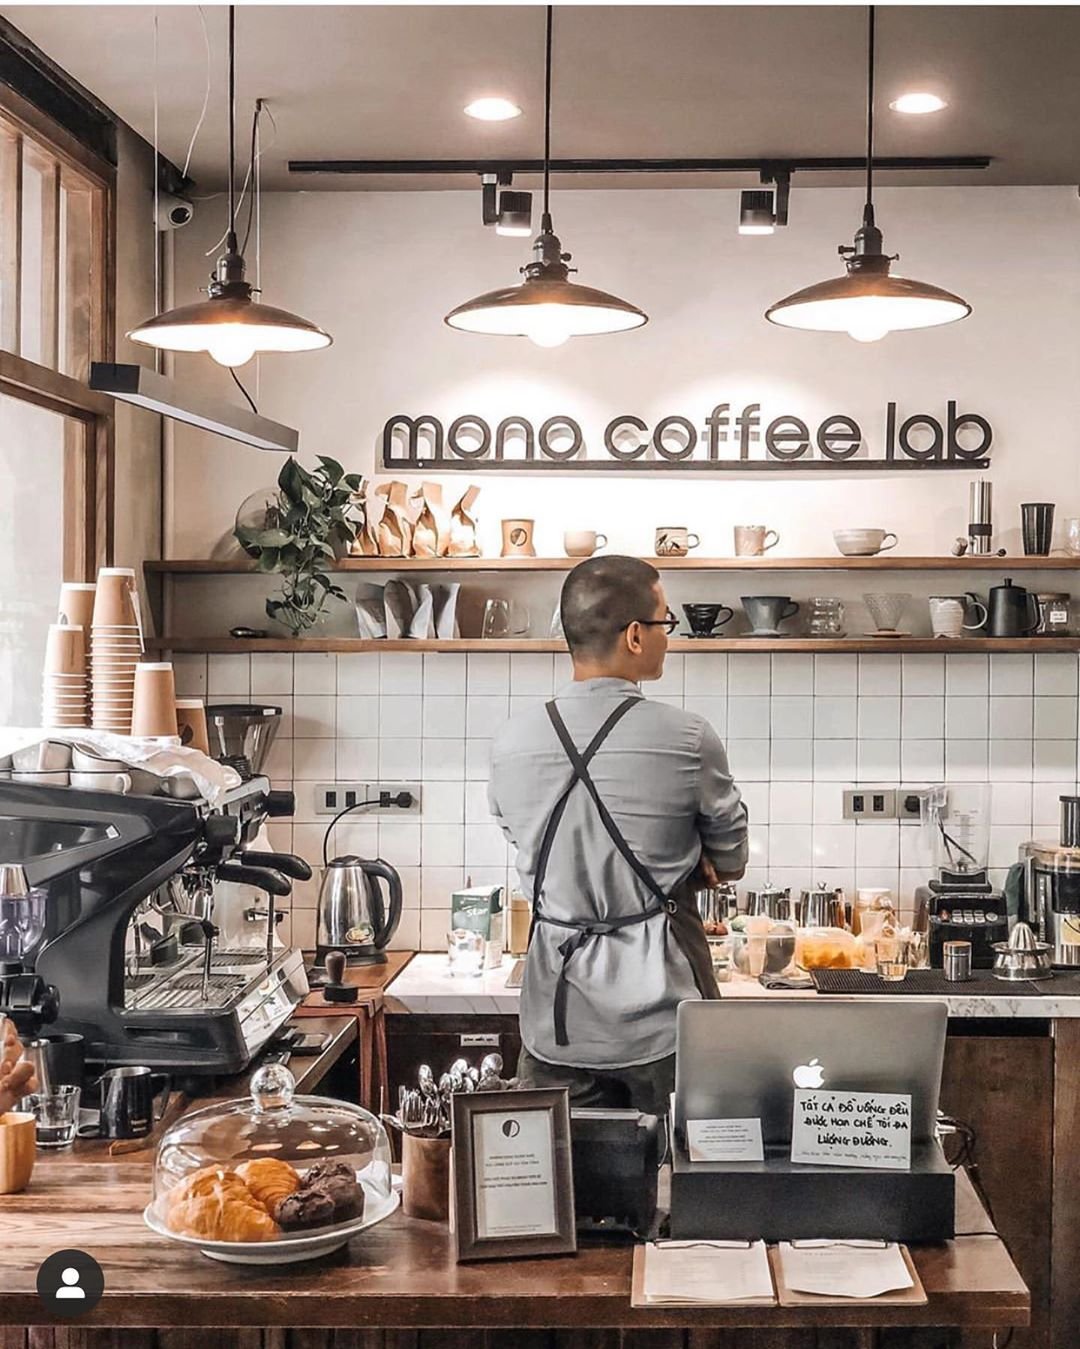 mono coffee lab 2_quan ca phe ha noi_elle man_0320